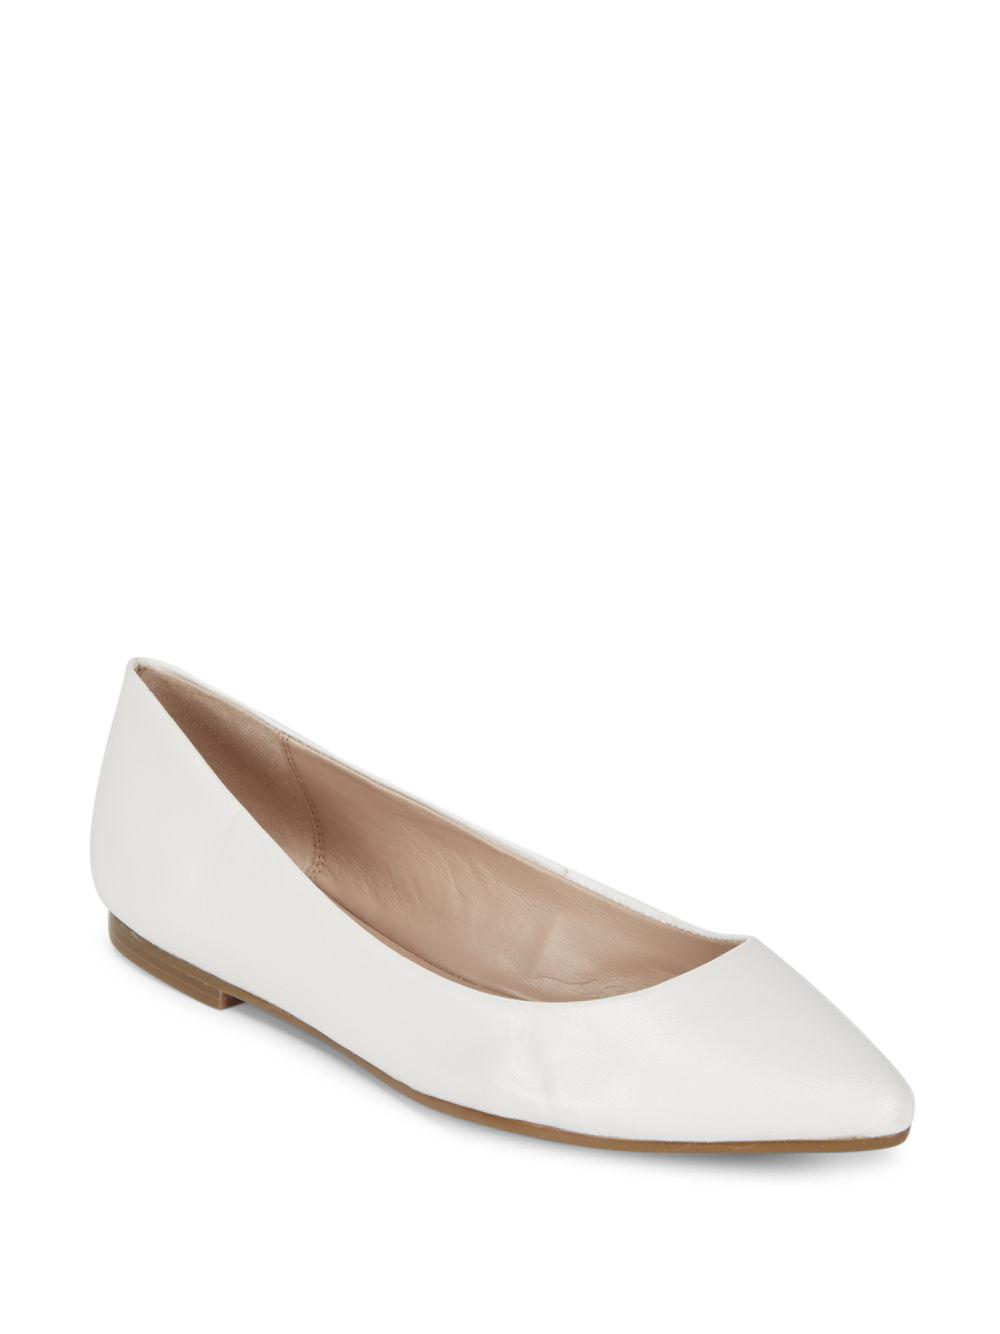 71e751c0aa50bf Lyst - BCBGeneration Millie Leather Flats in White